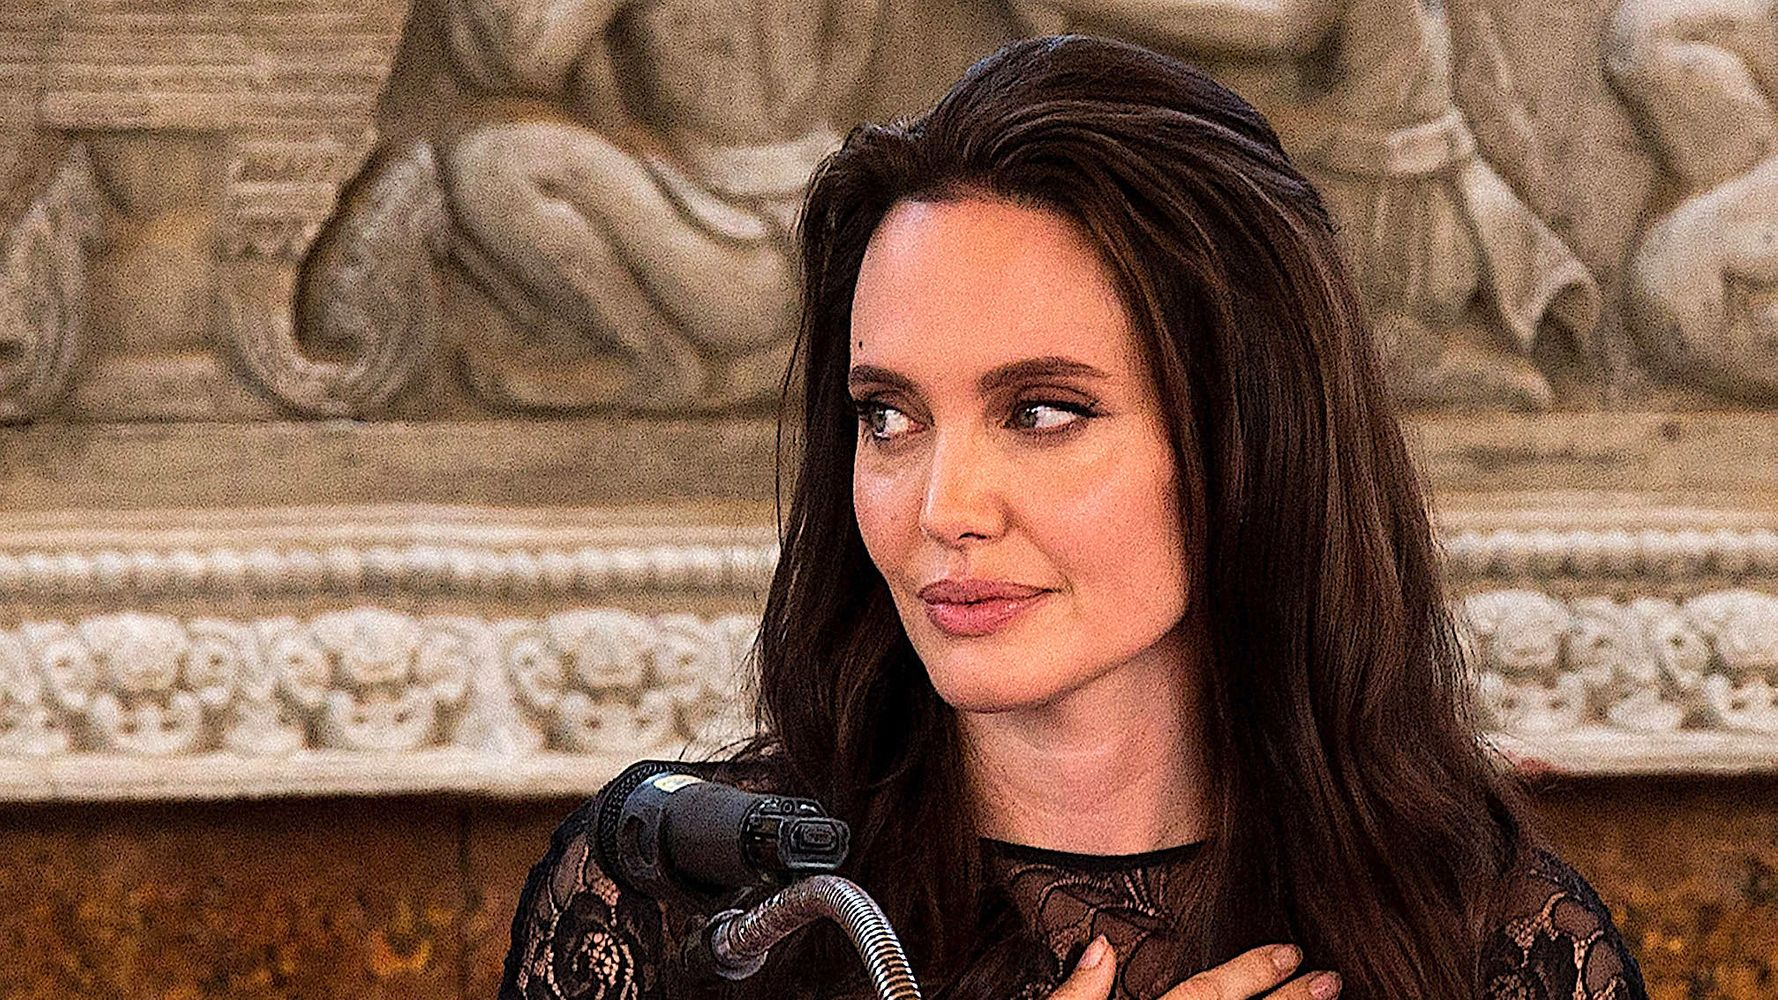 Angelina Jolie Refutes Vanity Fair's Portrayal Of Controversial Auditions